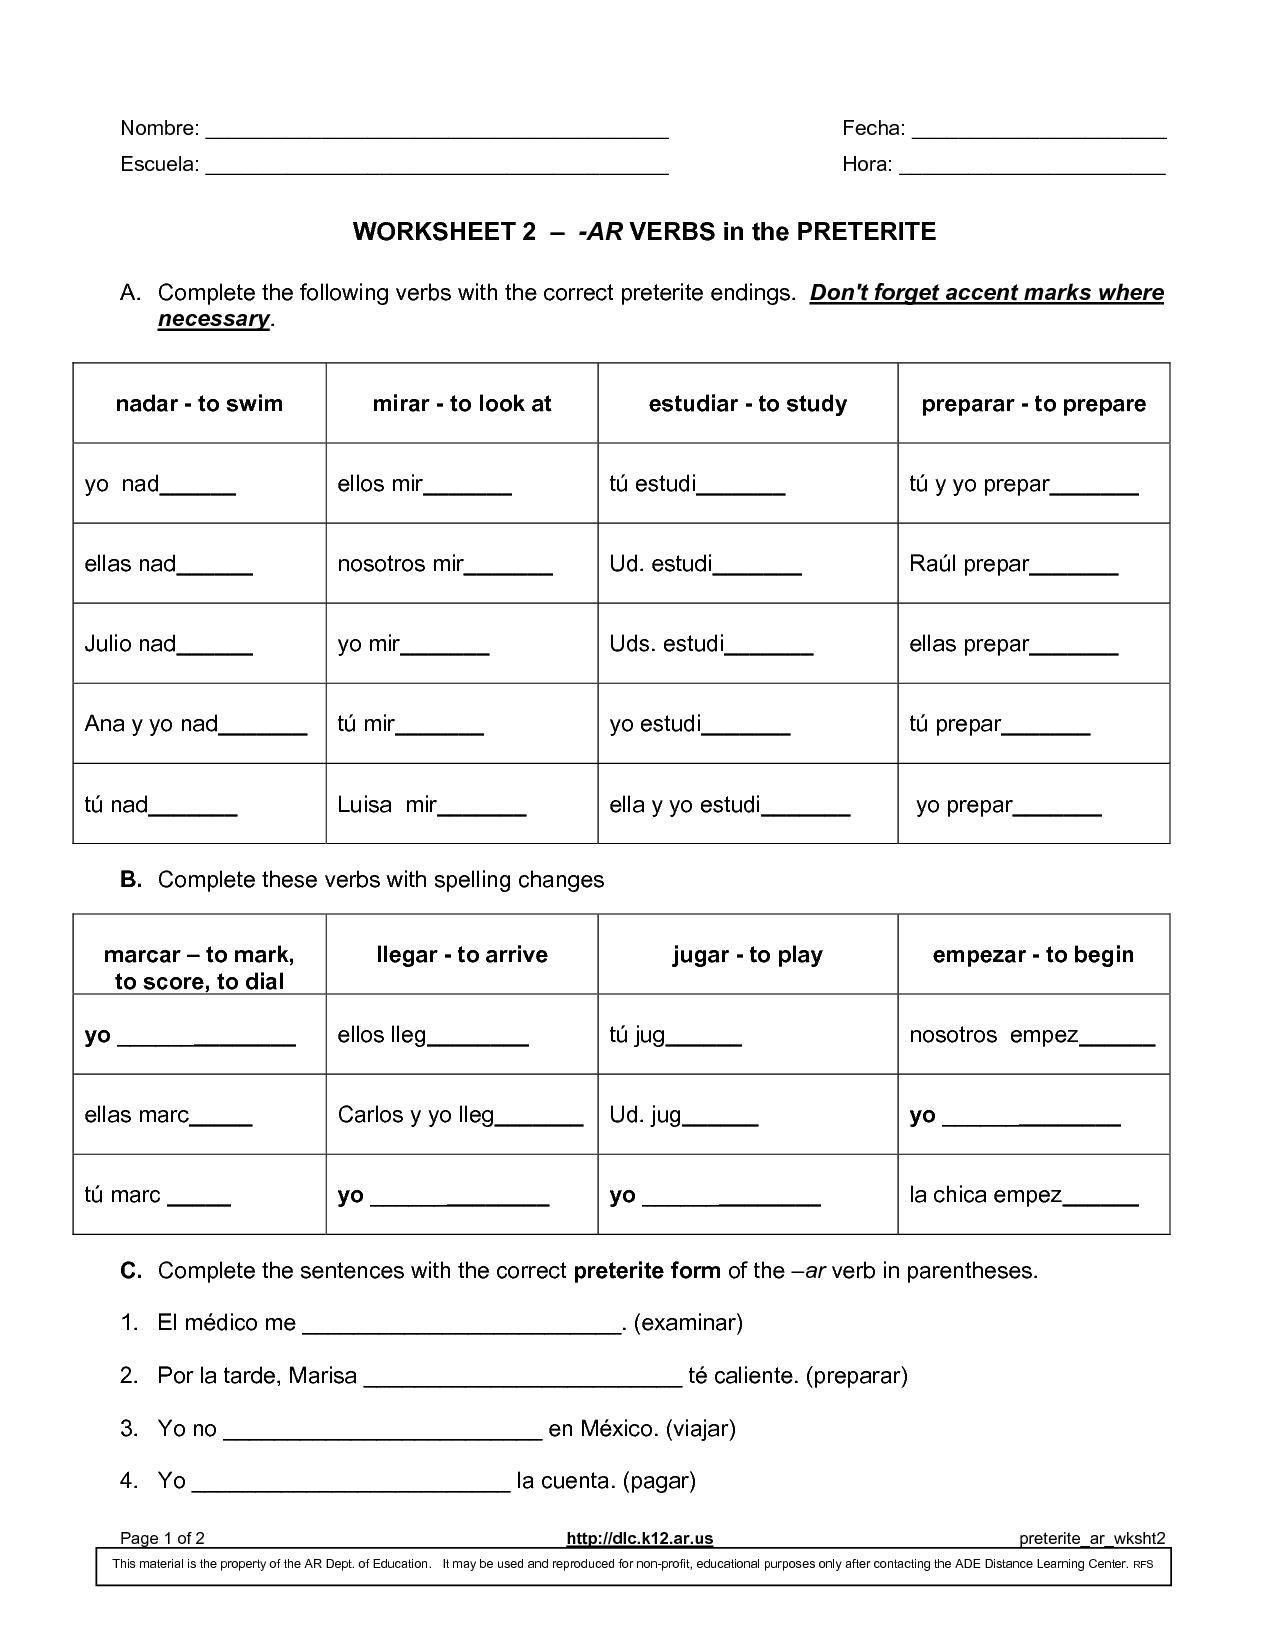 Worksheet Preterite Tense Answers